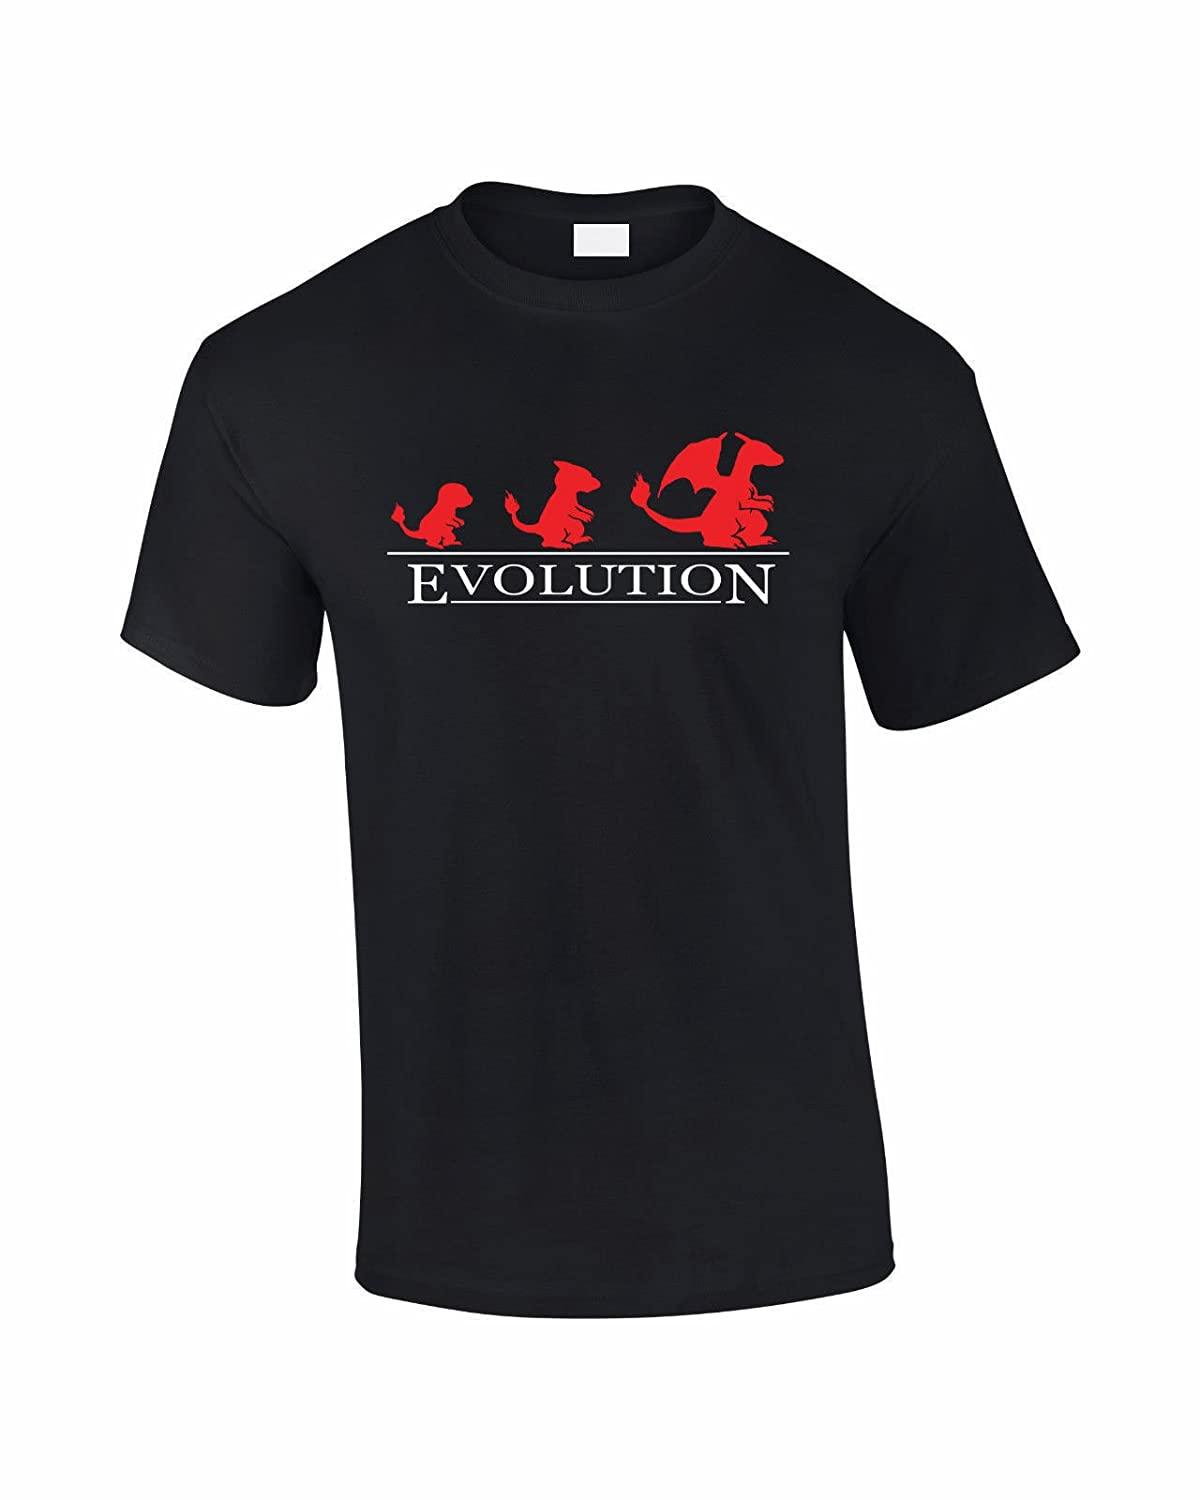 9fb451ac Mellor Design Charizard Evolution Inspired by Pokemon Adults T Shirt:  Amazon.co.uk: Clothing